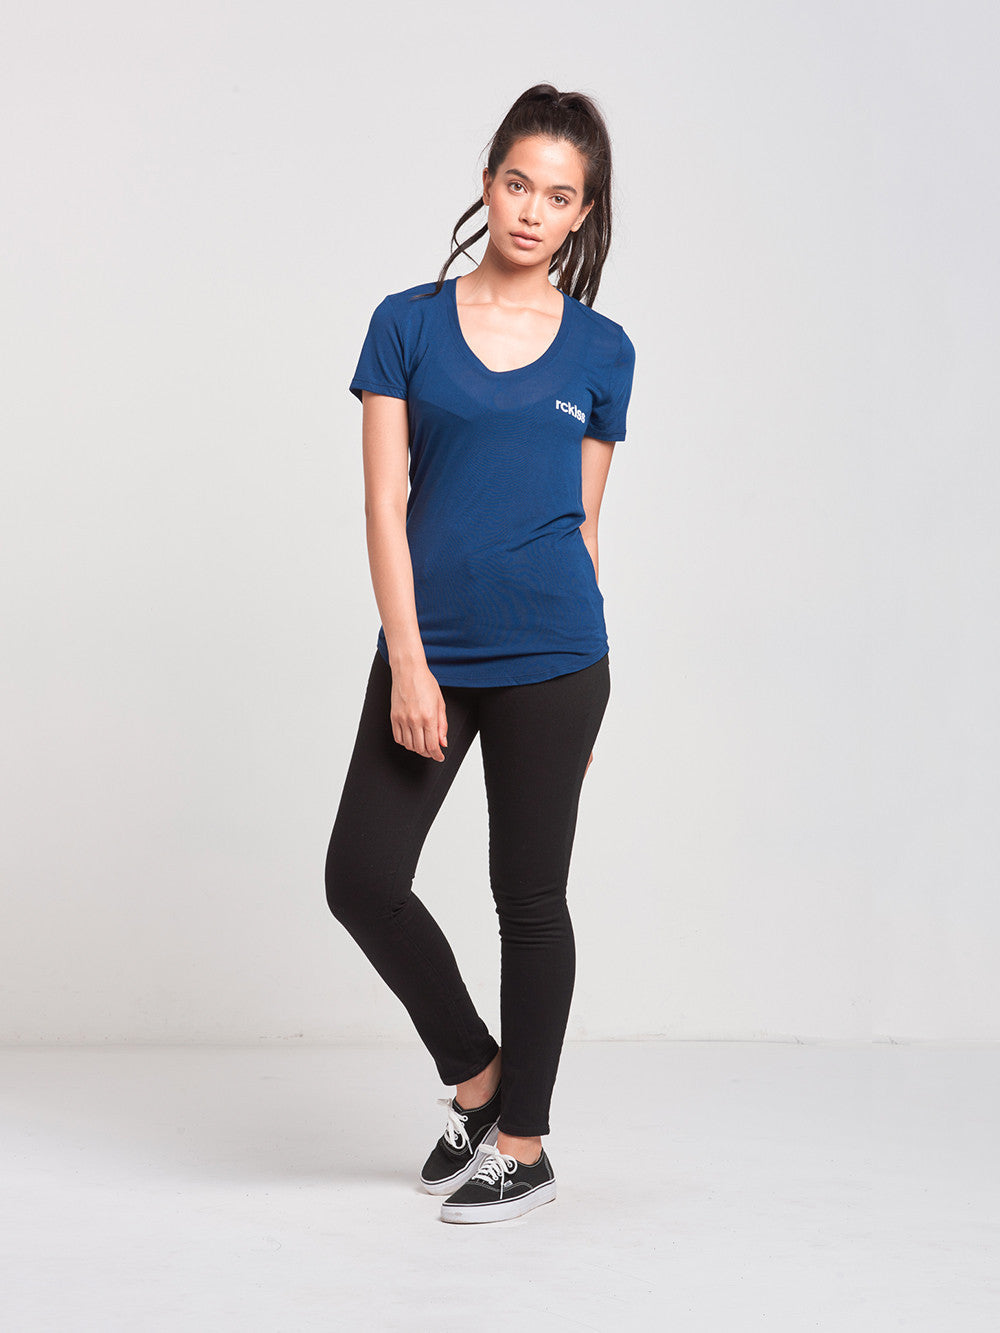 Reckless Girls Womens - Tops - Tees Overturn Scoop Neck Tee- Navy